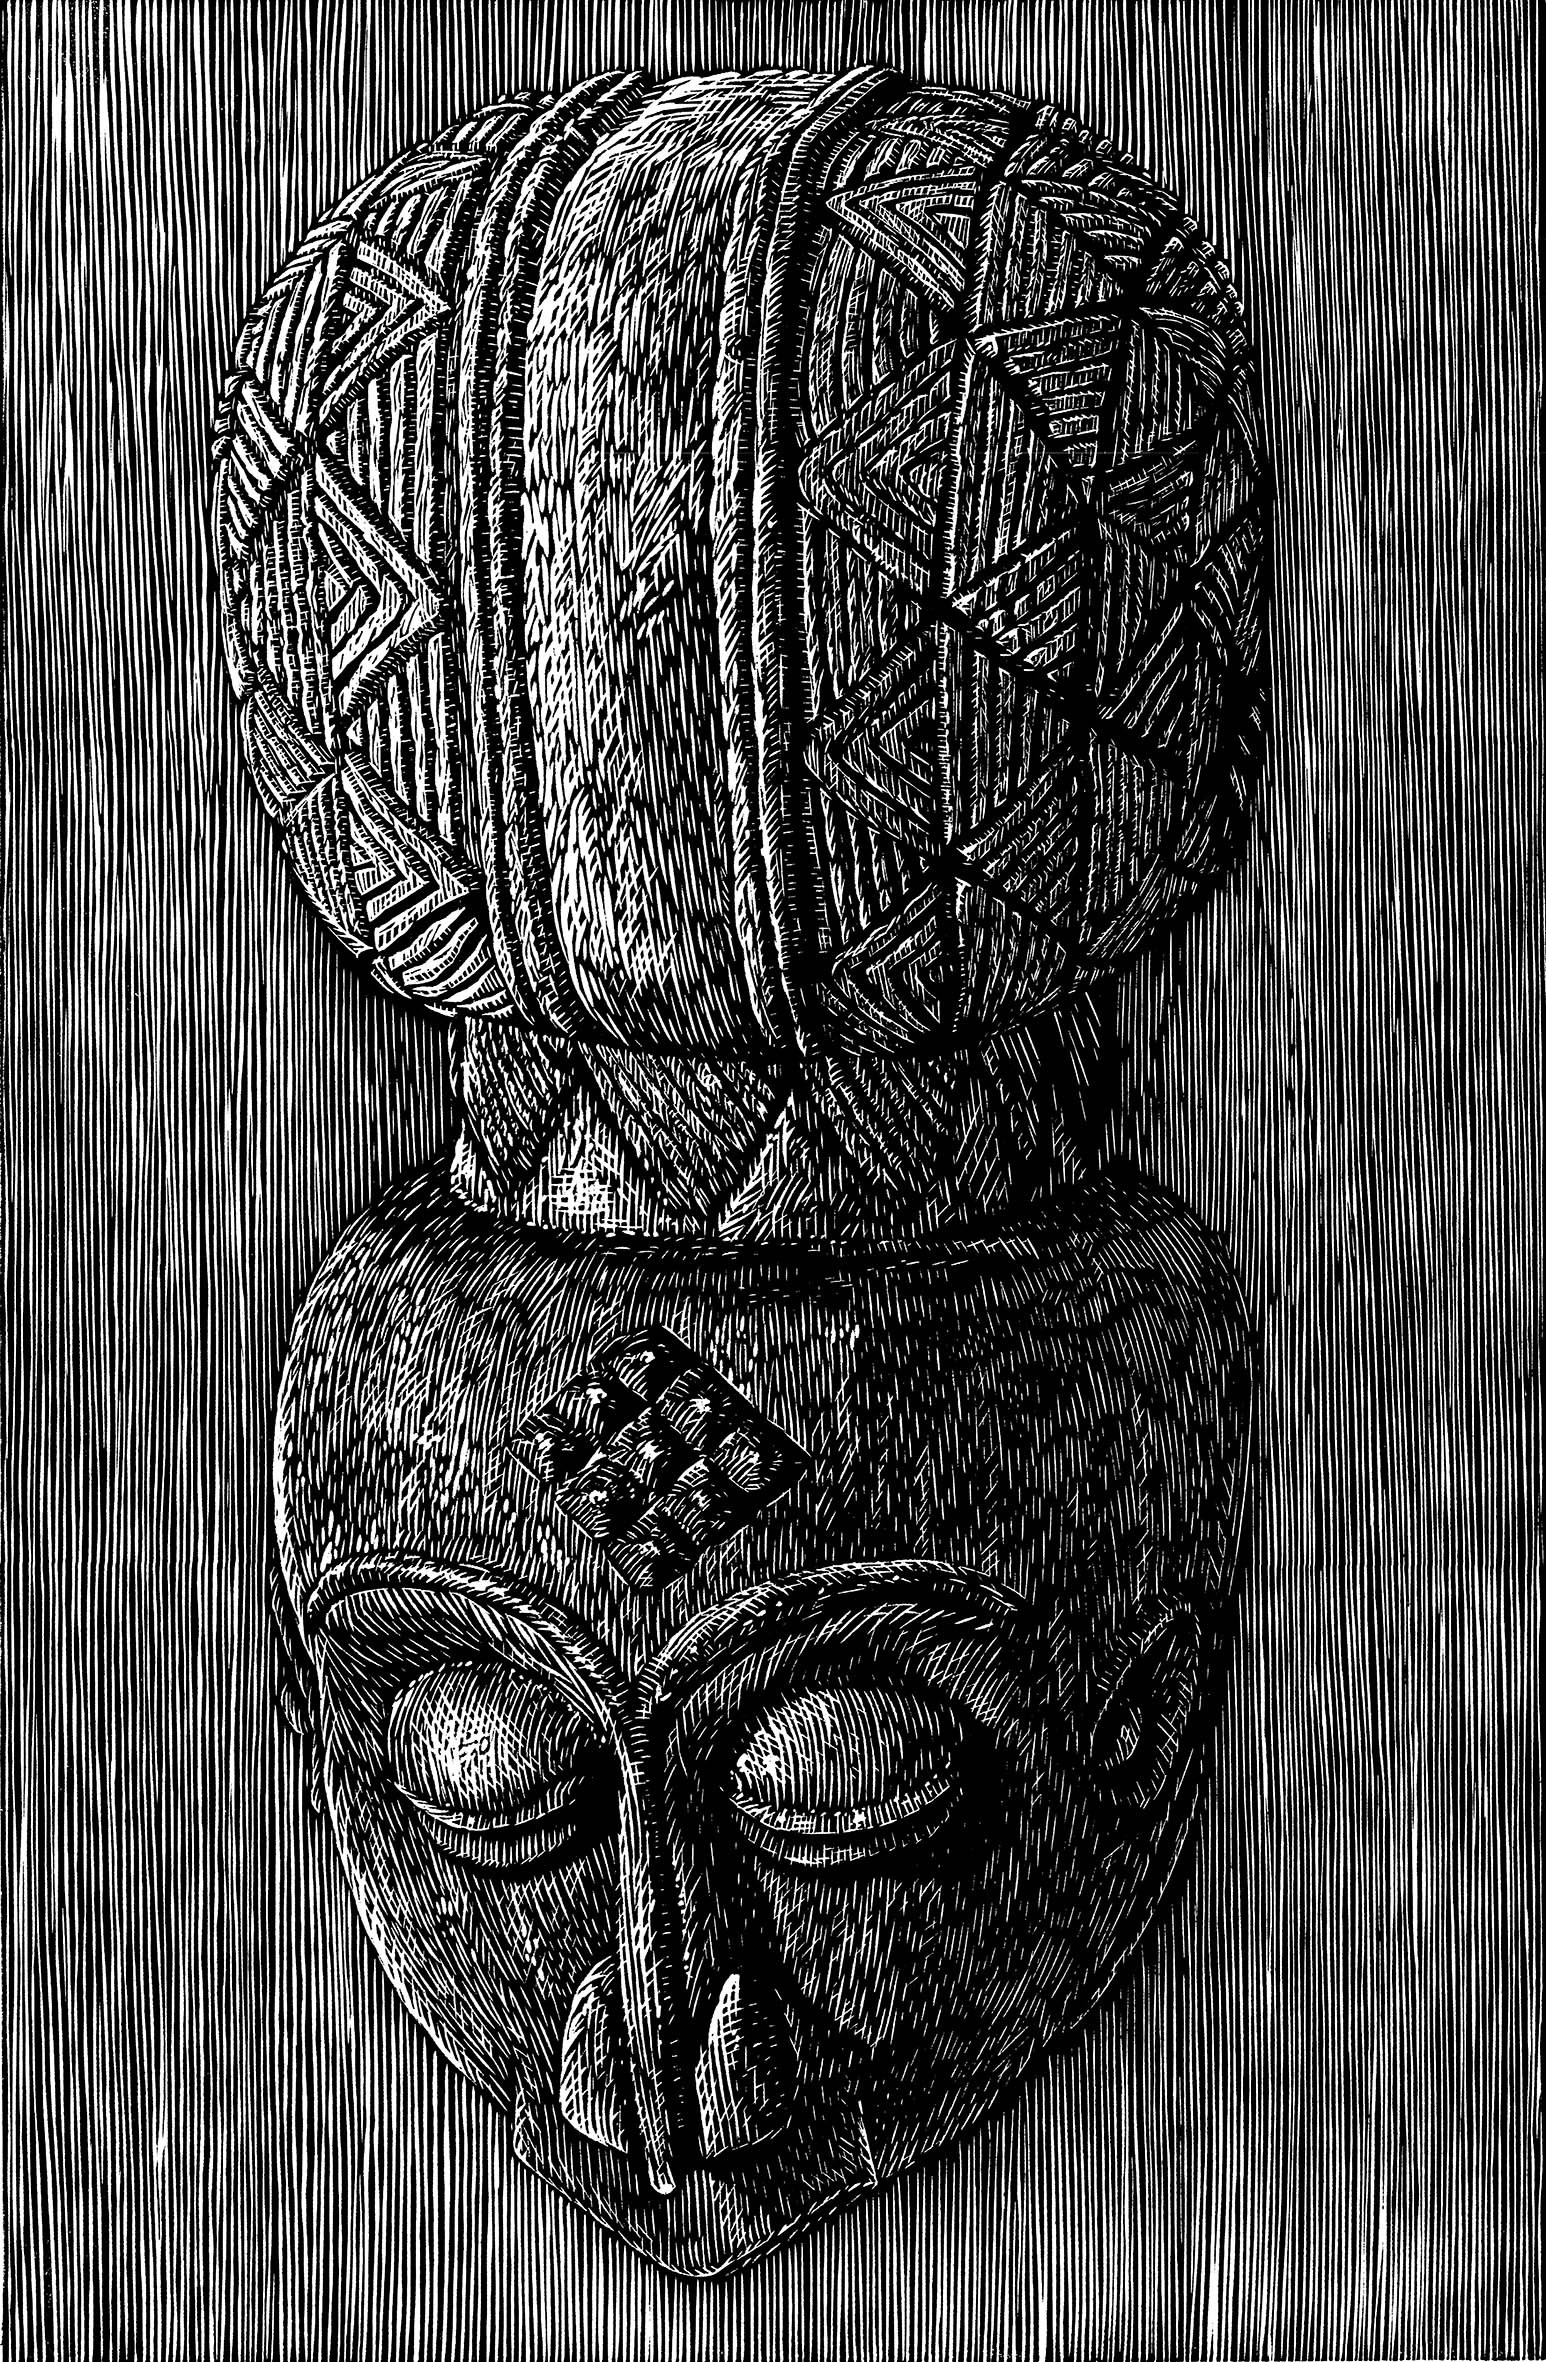 """<span class=""""link fancybox-details-link""""><a href=""""/exhibitions/17/works/image_standalone647/"""">View Detail Page</a></span><p><strong>David Bromley</strong></p><p>African Head</p><p>linocut, ed of 20</p><p>48 x 64cm</p><p>£350 framed</p><p>£200 unframed</p>"""